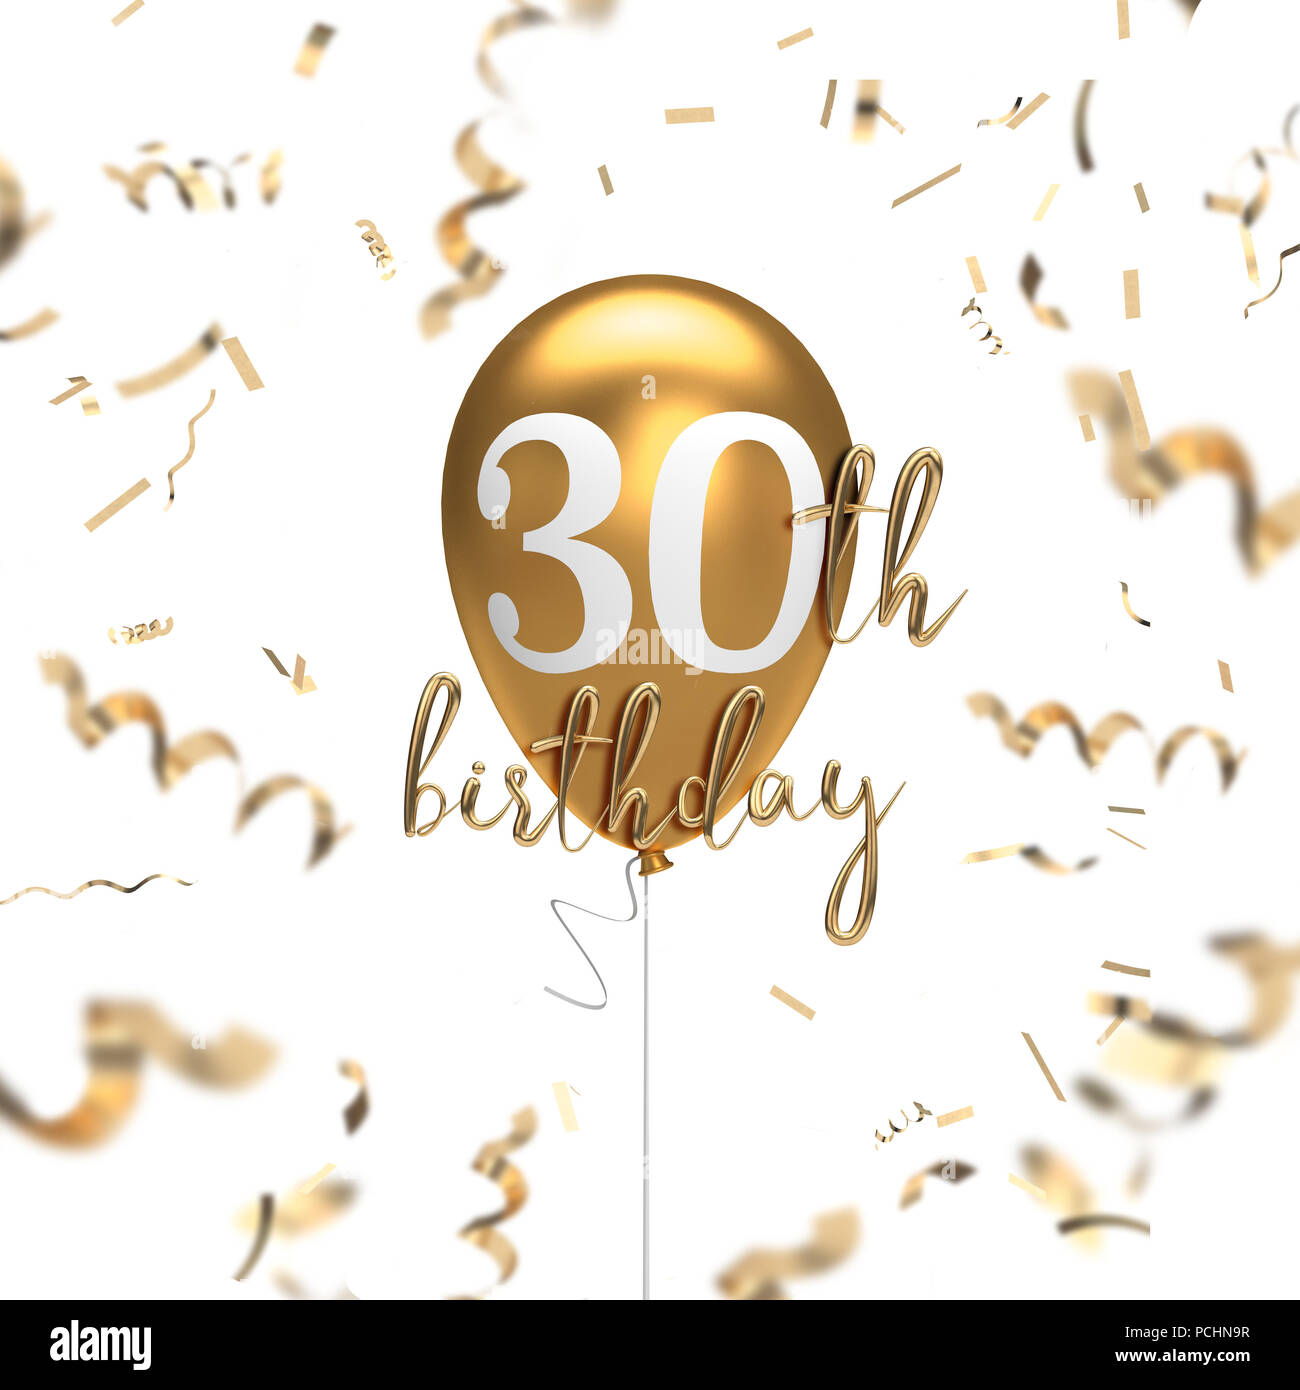 happy 30th birthday gold balloon greeting background 3d rendering